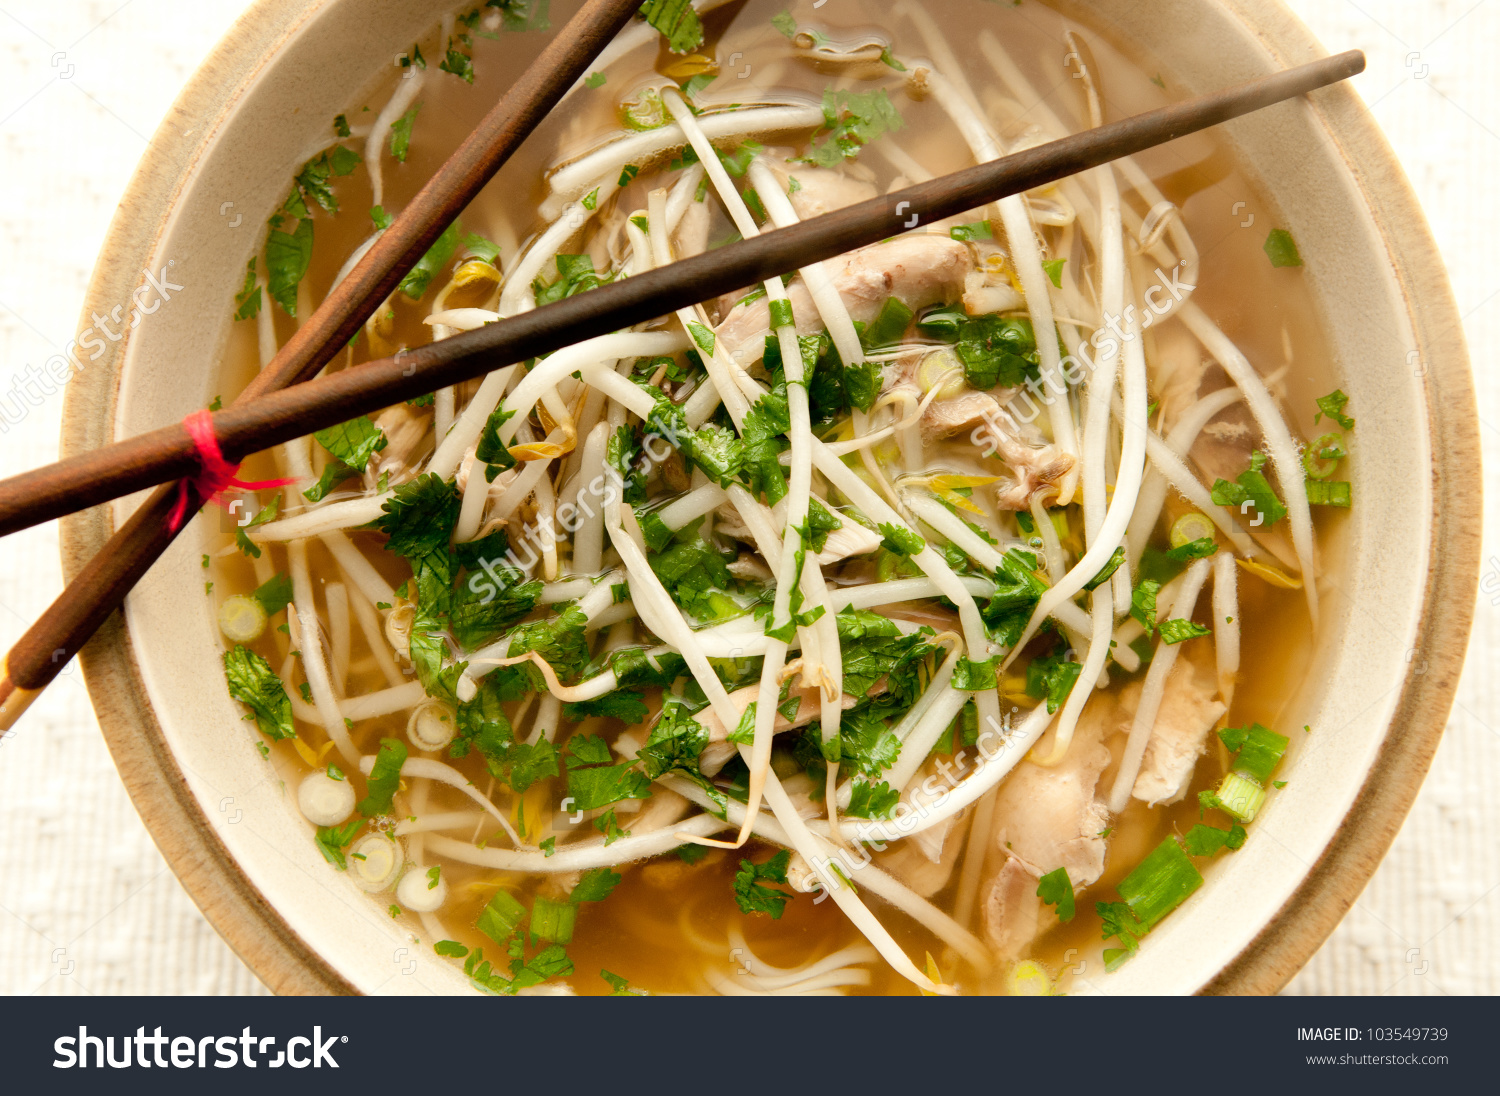 Vietnamese Pho Soup Ethnic Meal Chicken Stock Photo 103549739.